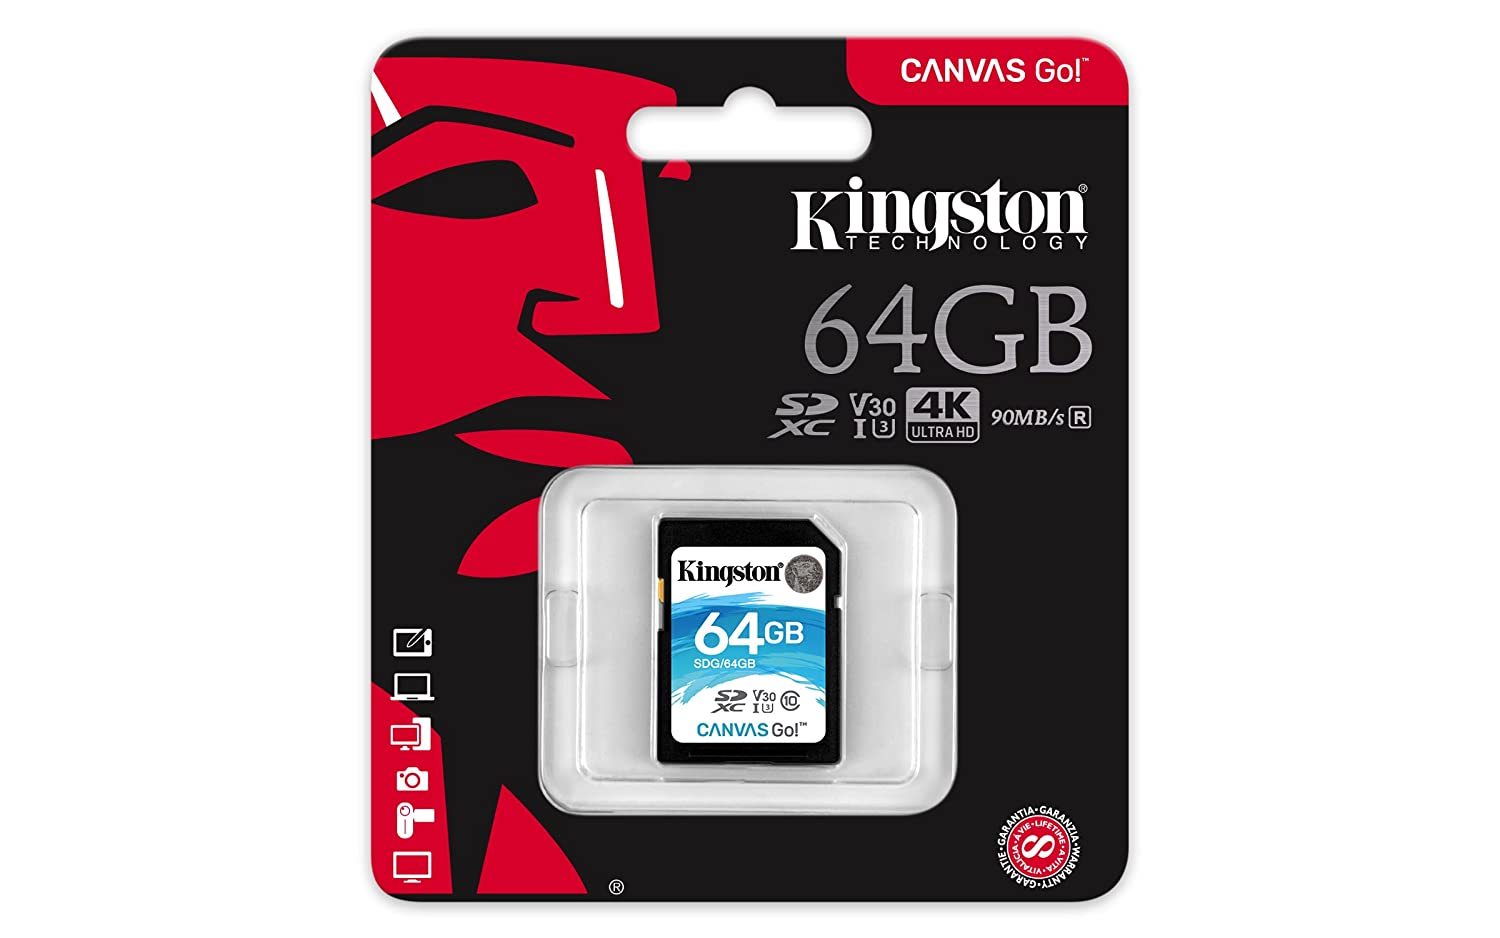 Kingston Canvas Go! 64GB SDXC Class 10 SD Memory Card UHS-I 90MB/s R Flash Memory Card (SDG/64GB)